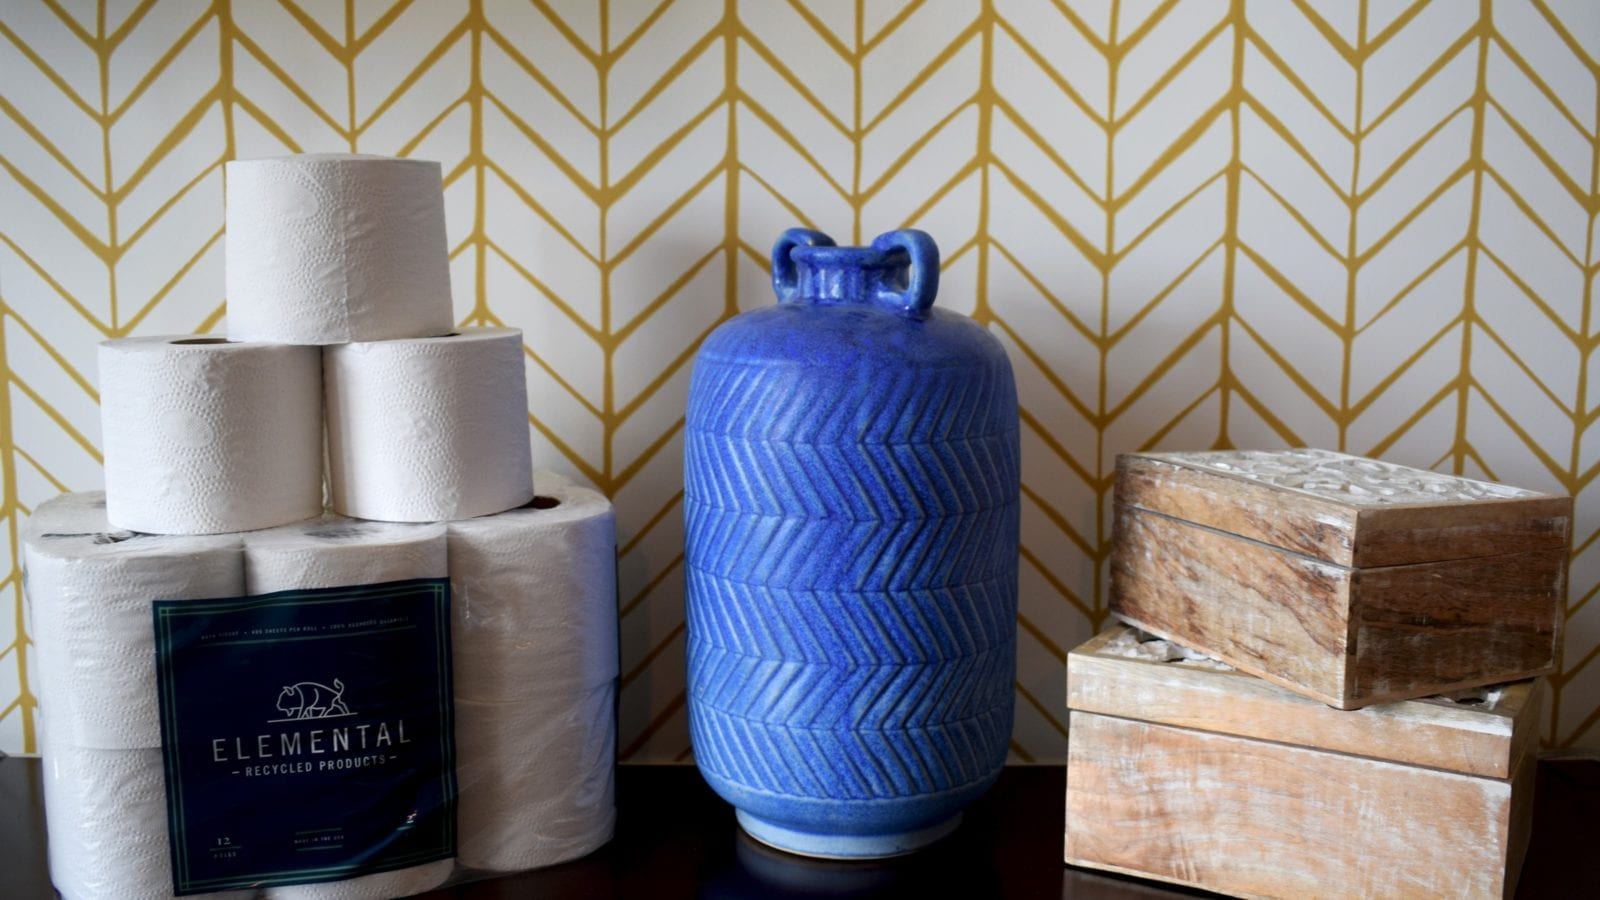 Elemental Recycled Bath Tissue on 100 Days of Real Food